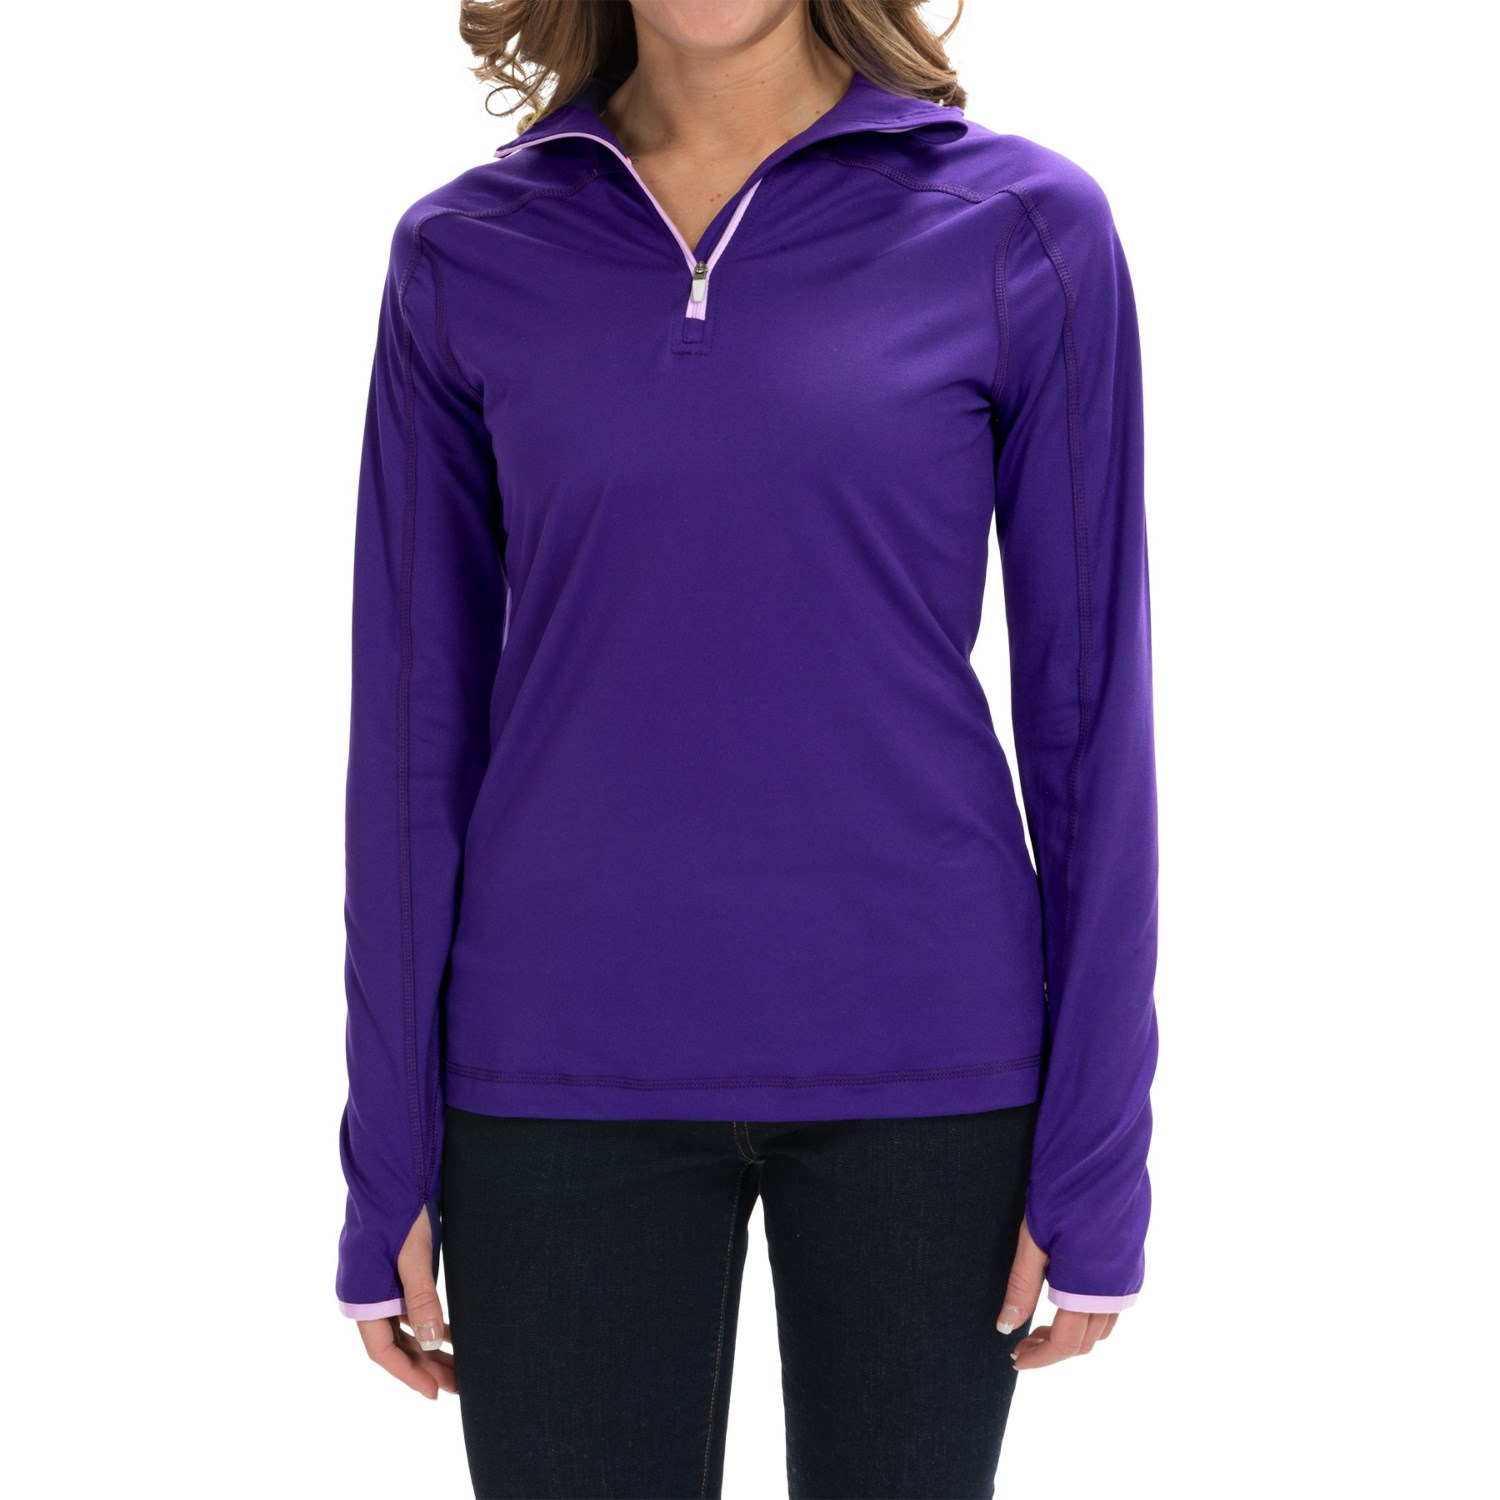 Active Pullover Shirt For Women Save 61